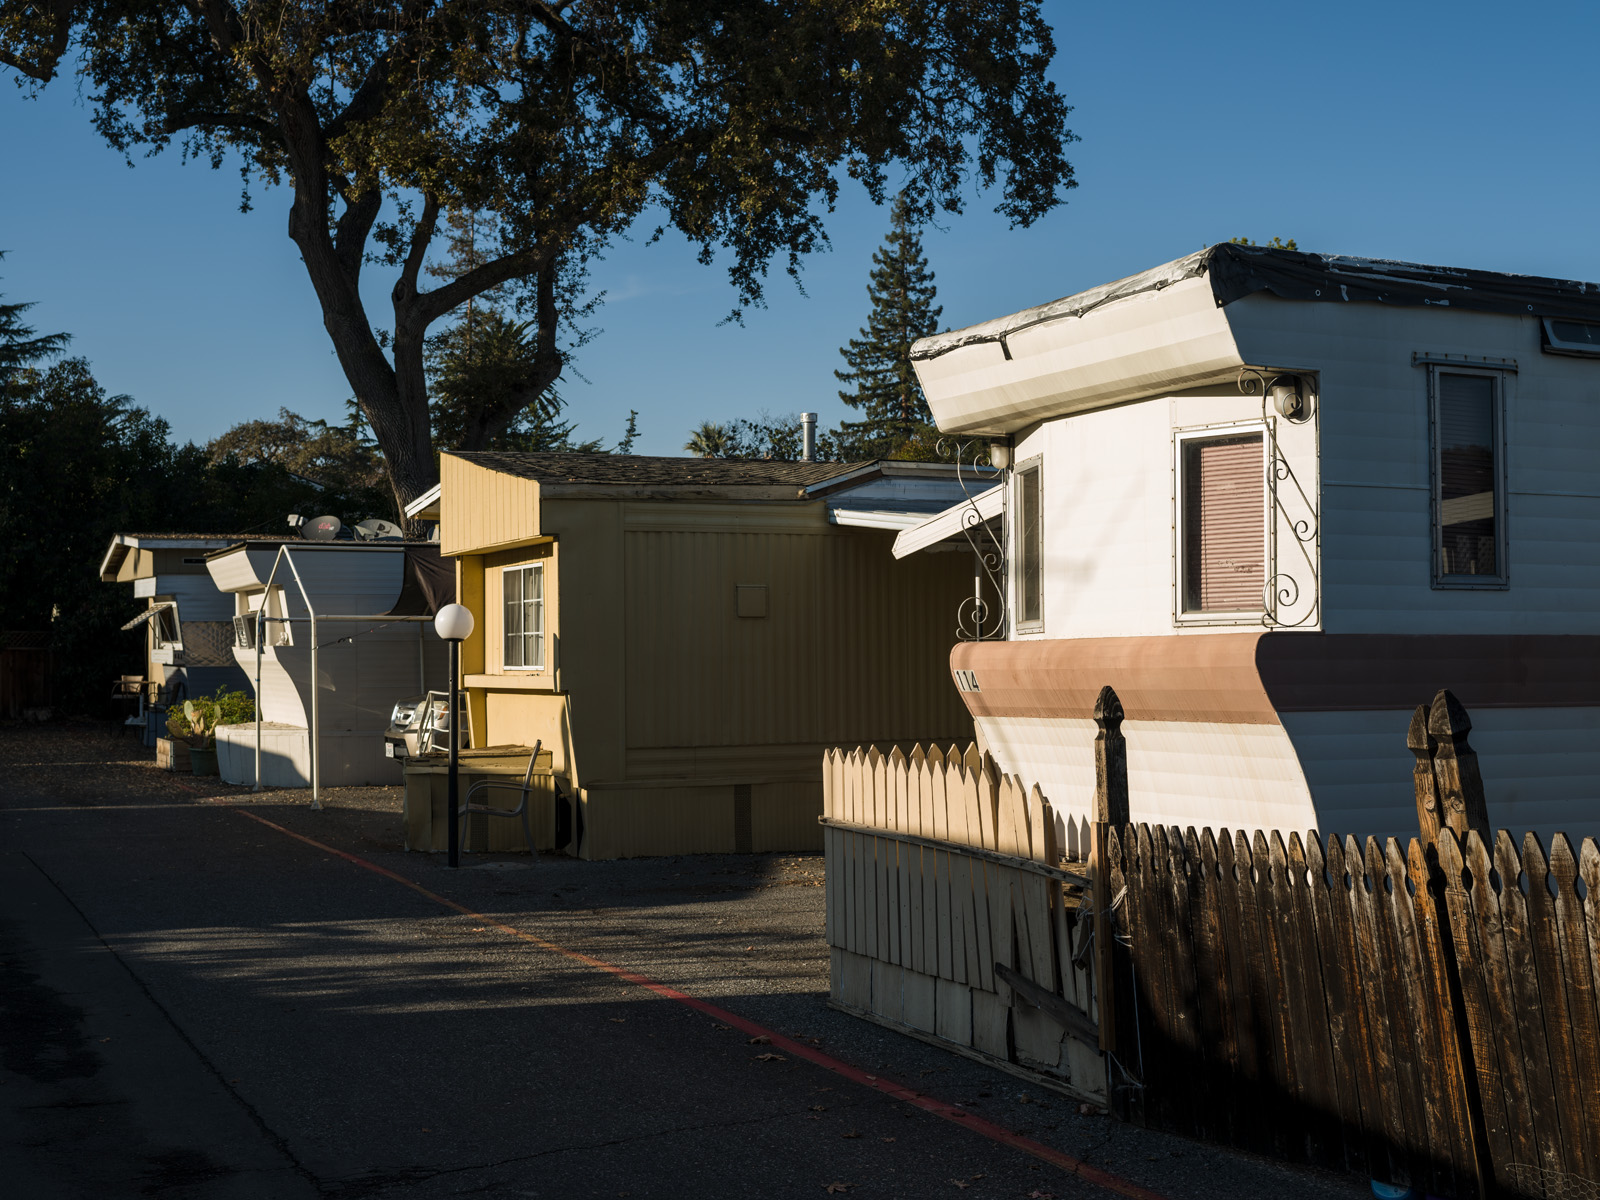 The sun sets on the trailers in the Buena Vista Mobile Home Park. The park offers one of the only affordable housing options in Palo Alto, where the median home price is $3.2 million.